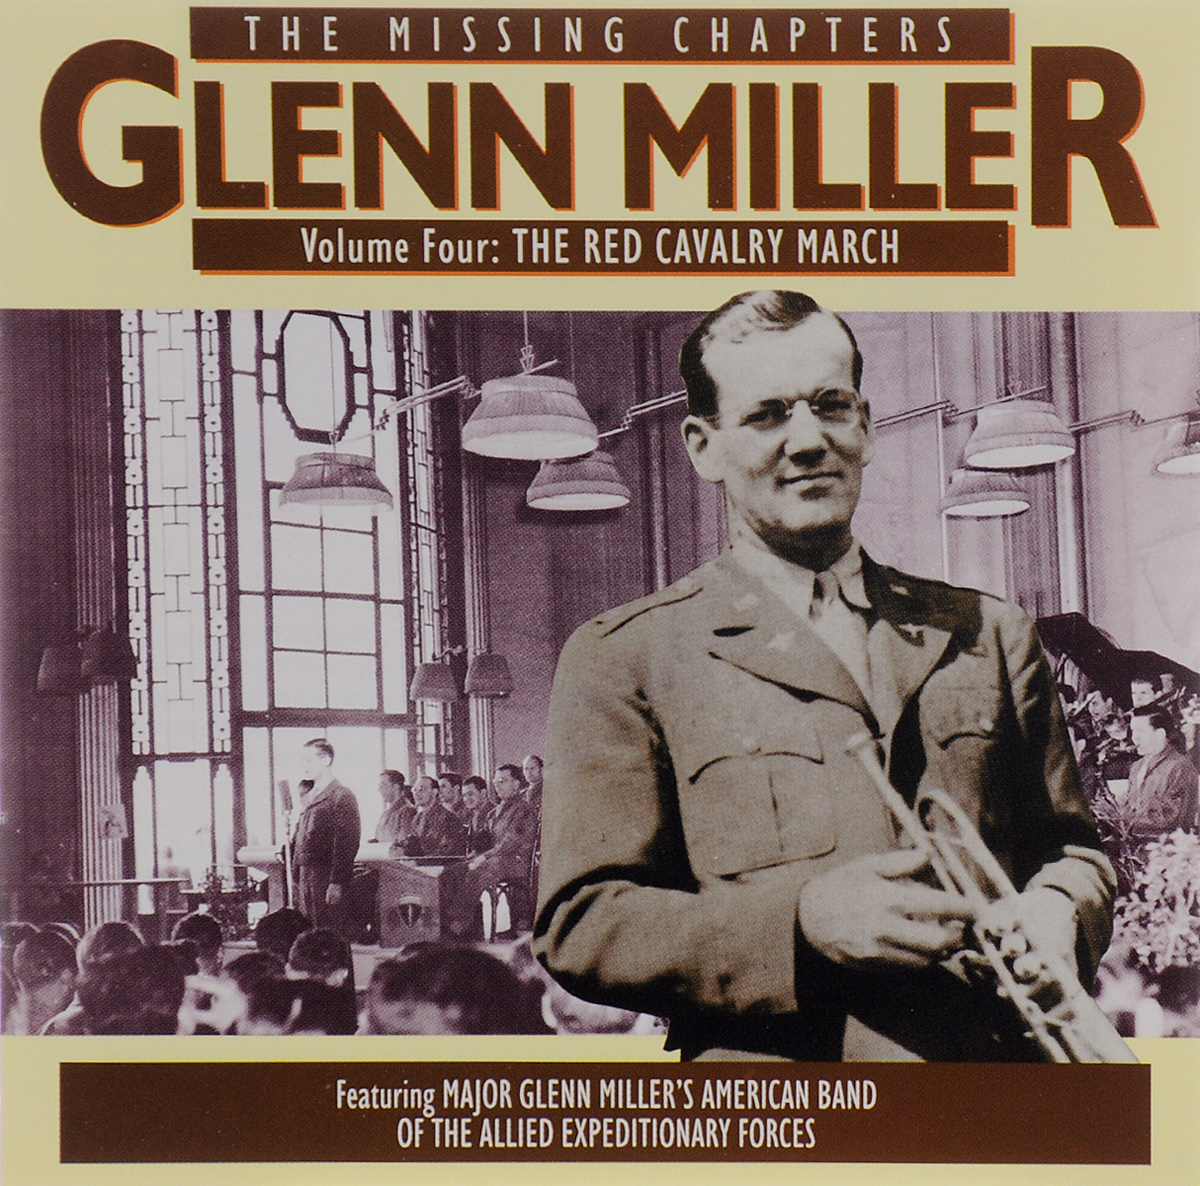 Гленн Миллер,Major Glenn Miller's American Band Of The Allied Expeditionary Forces Glenn Miller. The Missing Chapters. Volume 4. The Red Cavalry March